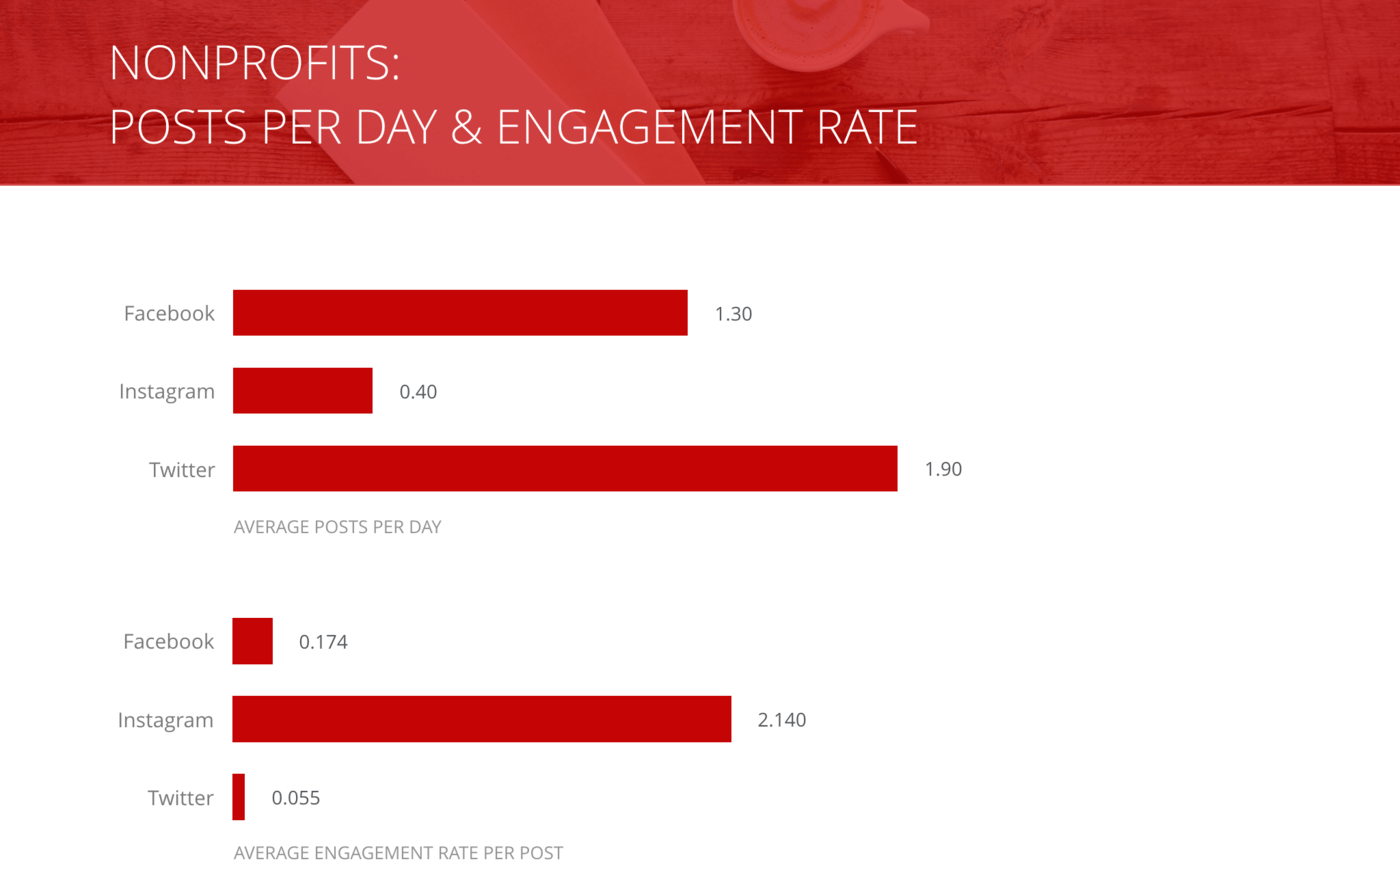 slide of Posts per Day and Engagement Rate per Post, Nonprofit Organizations